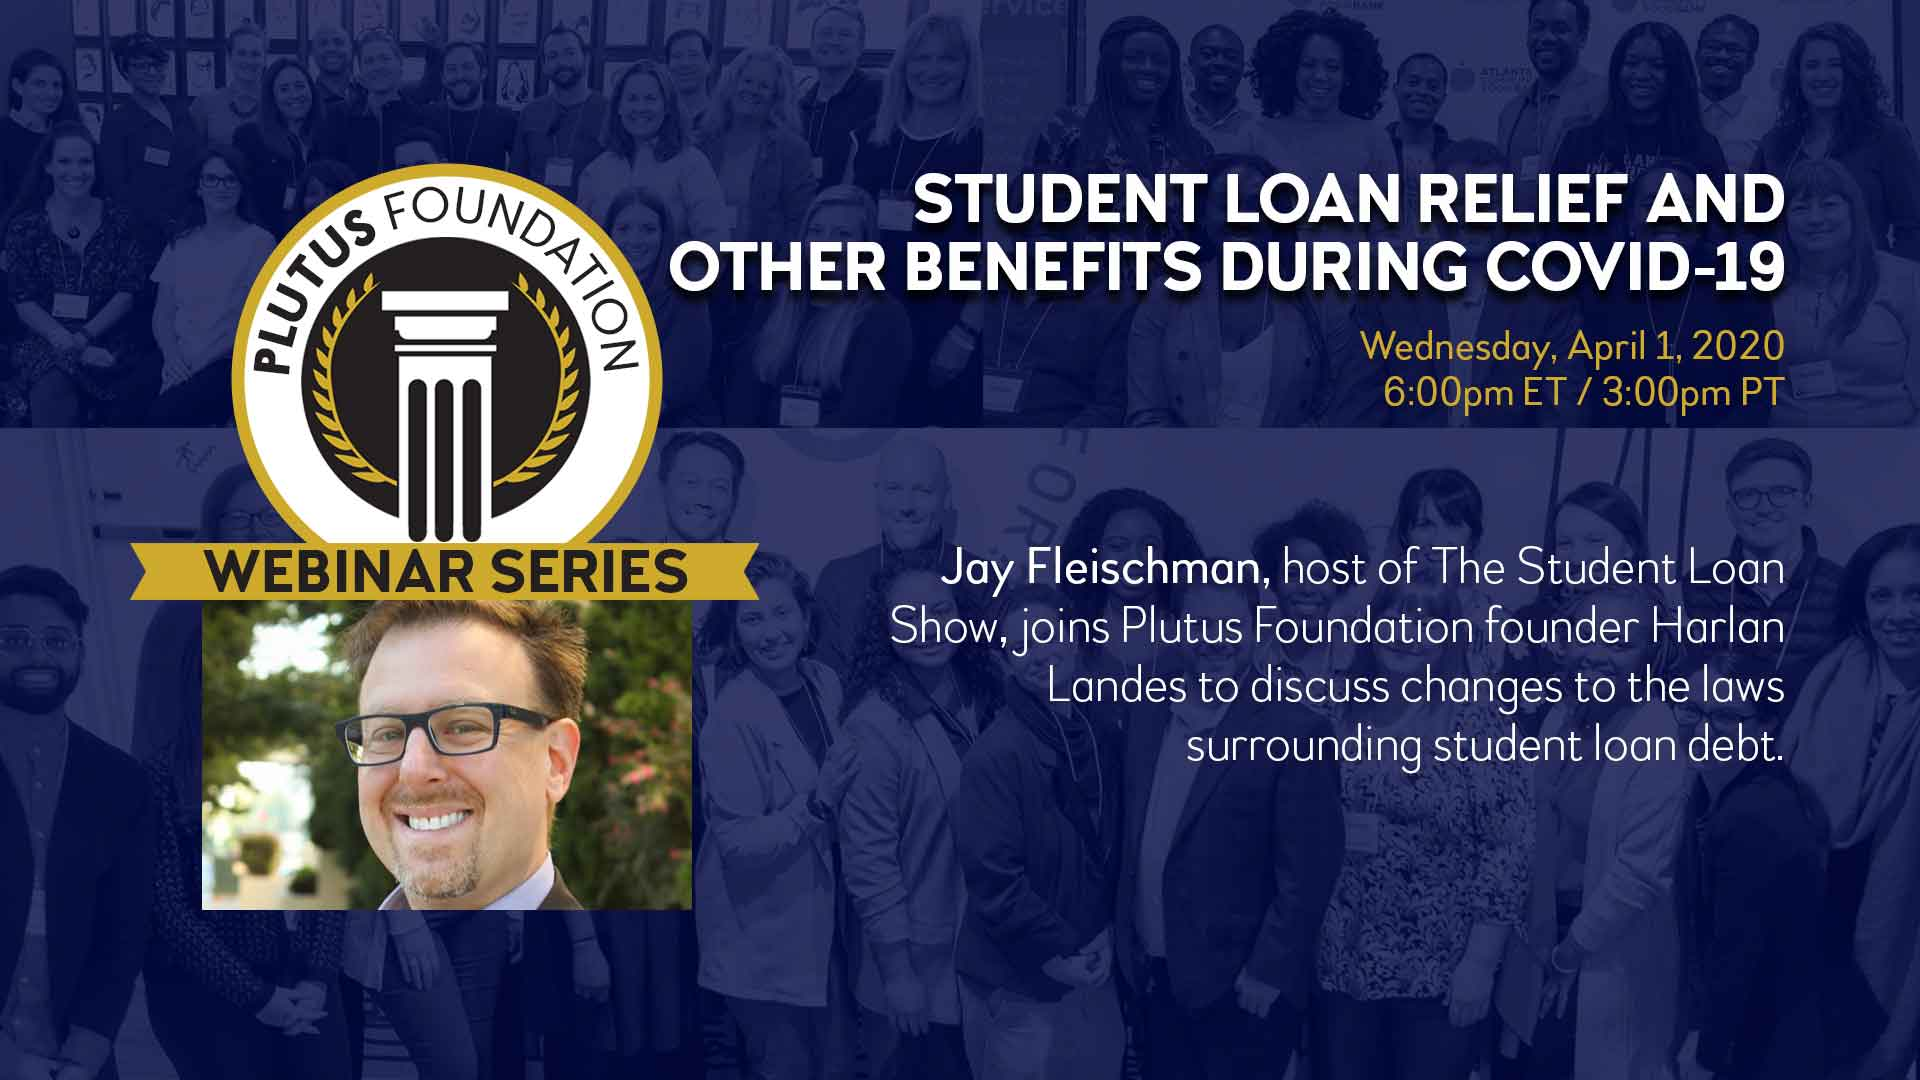 Student Loan Benefits During COVID-19 Webinar